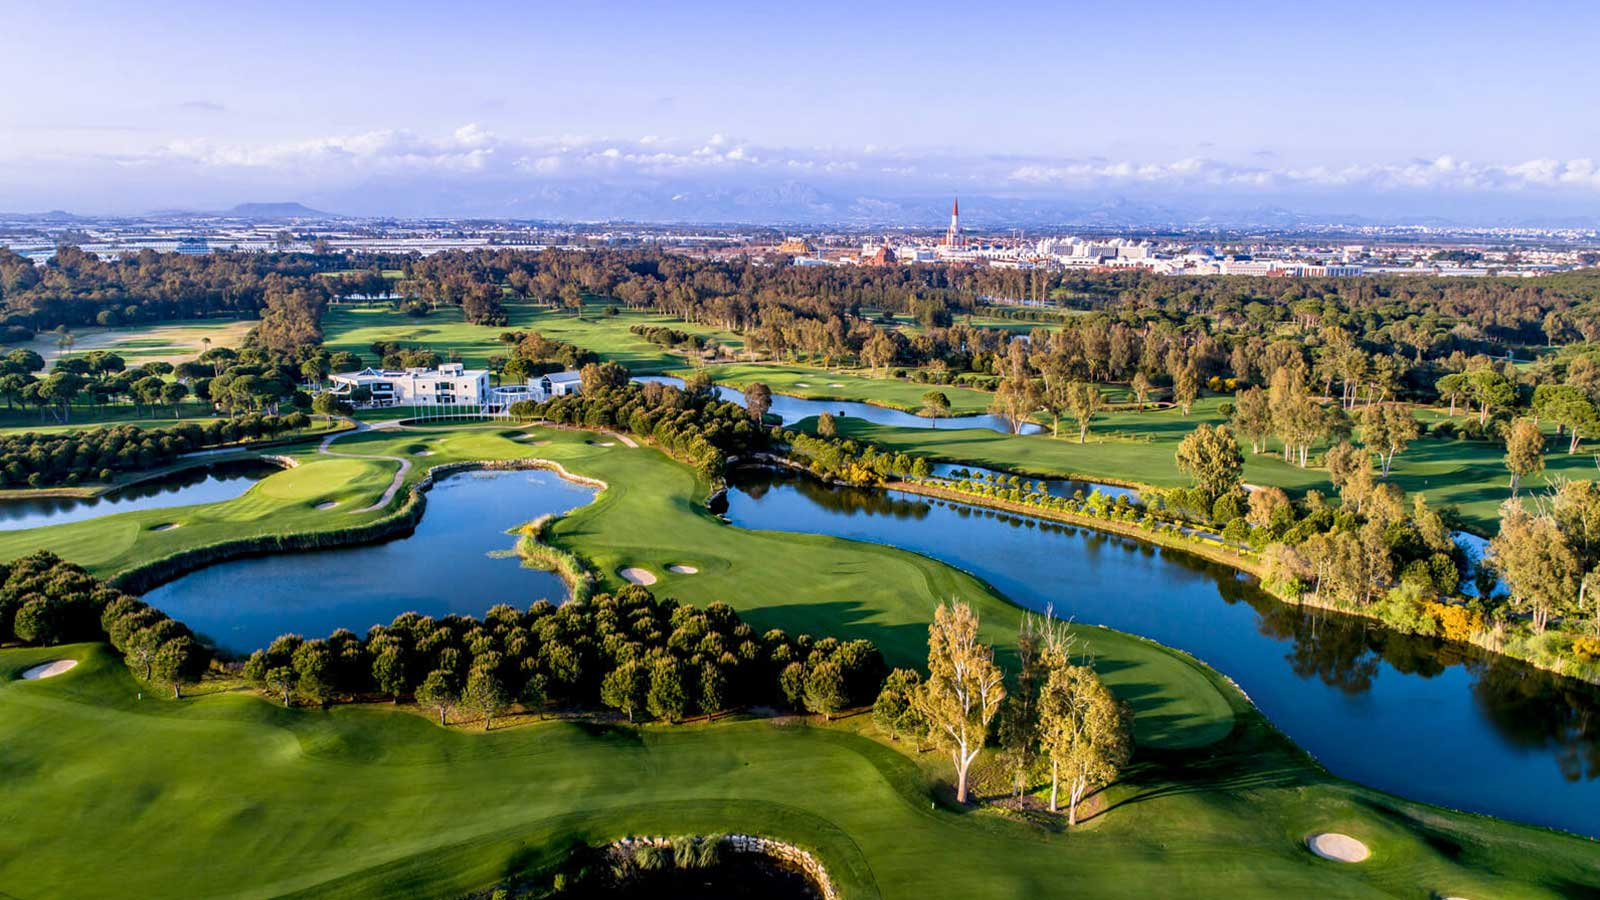 Book The Best Golf Holiday Break in Belek, Turkey